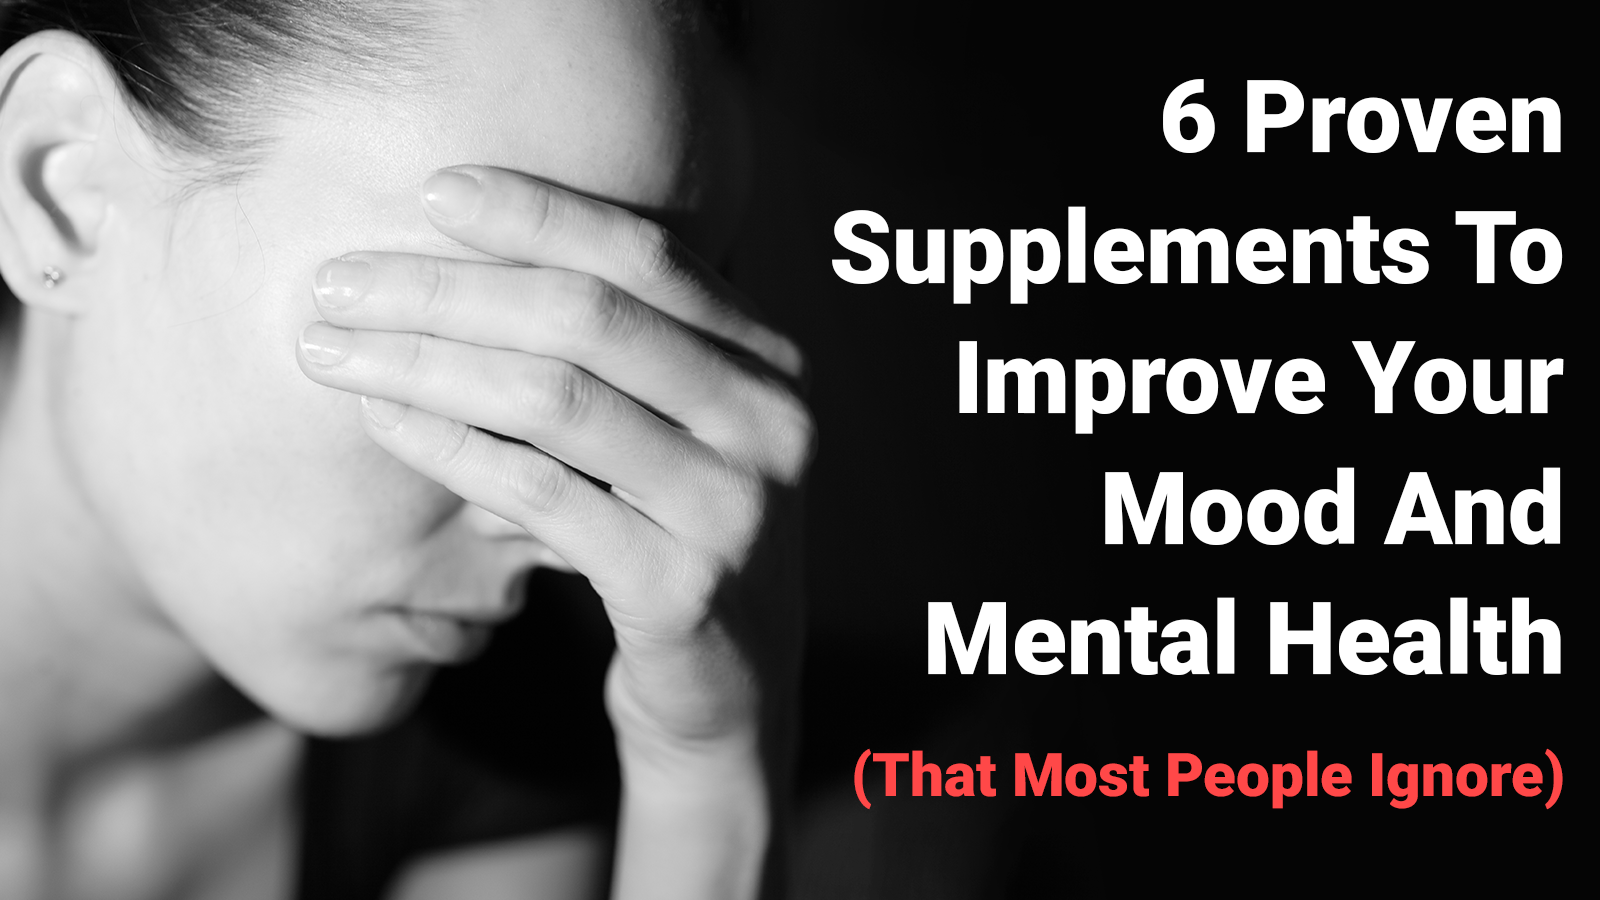 6 Proven Supplements To Improve Your Mood And Mental Health (That Most People Ignore)